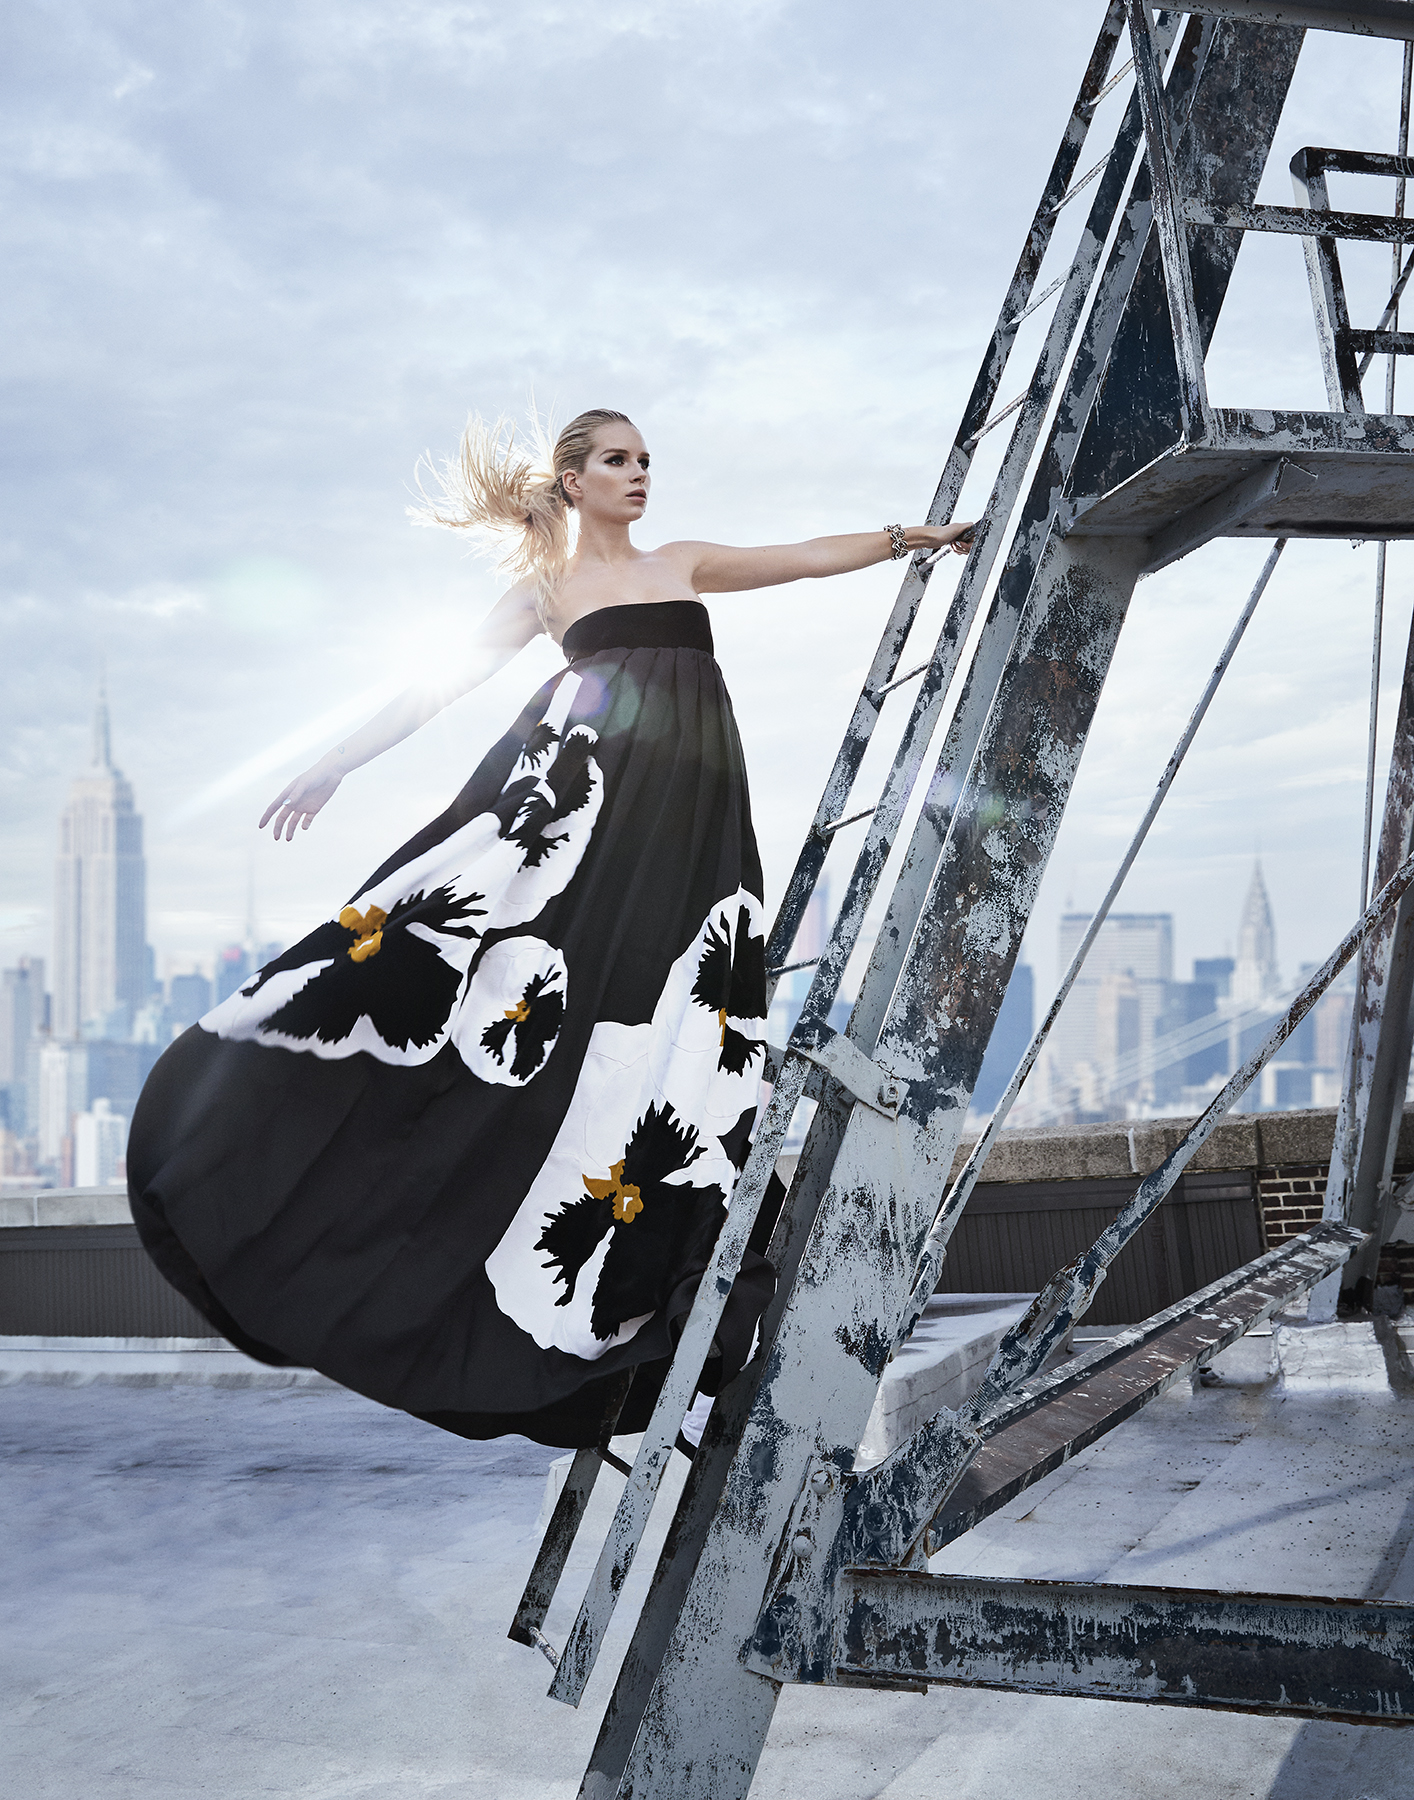 In the Heights - In this editorial, the energy and optimism of New York City provided the backdrop for the Fall 2018 couture collections.